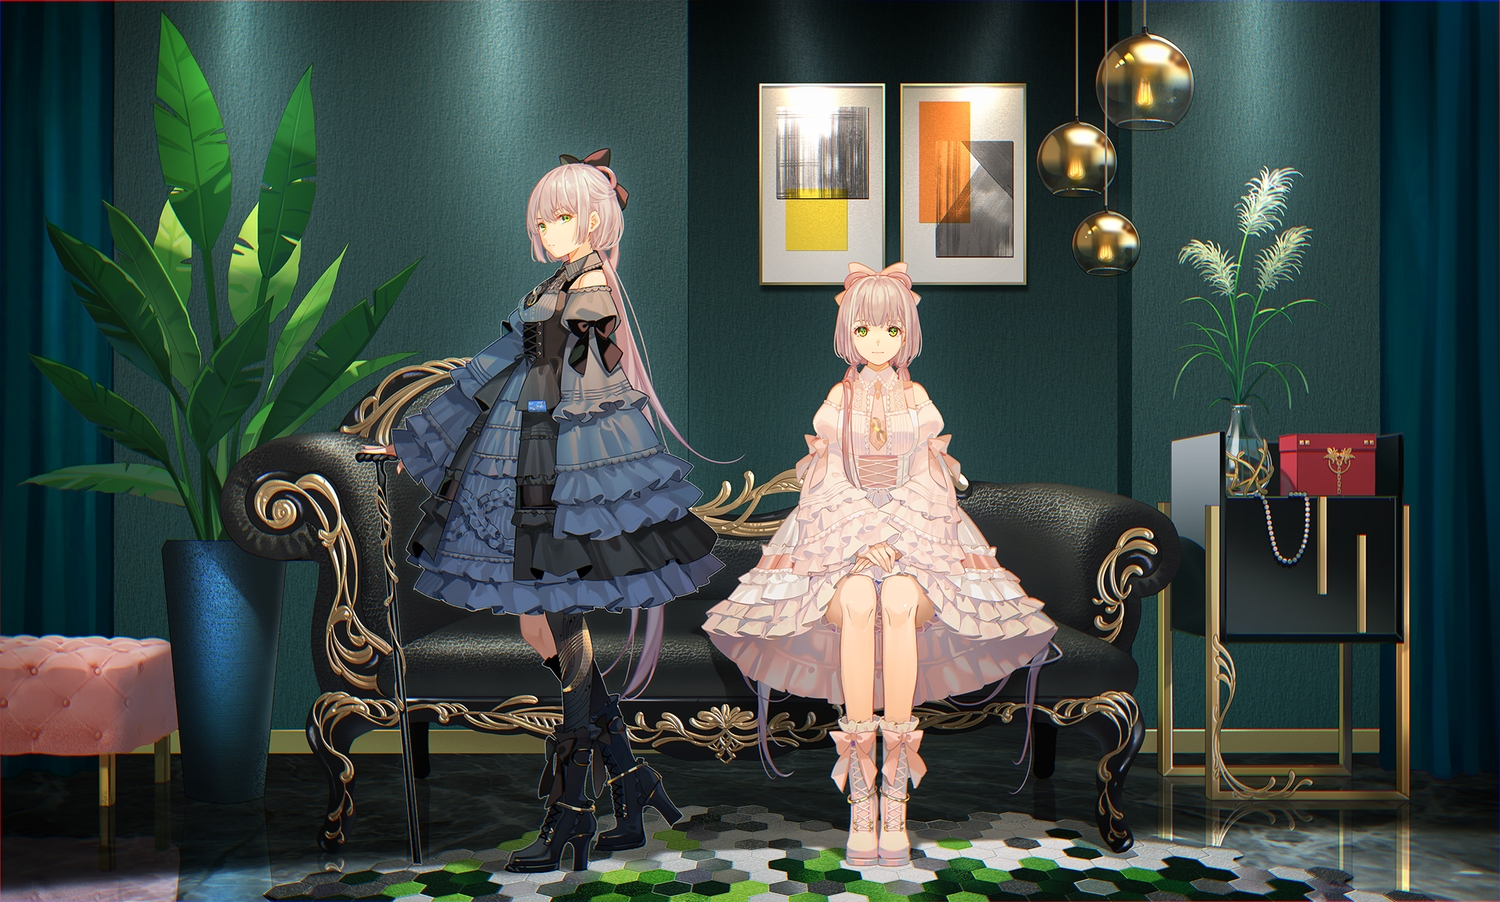 2girls couch goth-loli gray_hair green_eyes lolita_fashion long_hair reflection tagme_(character) tidsean twintails vocaloid vsinger